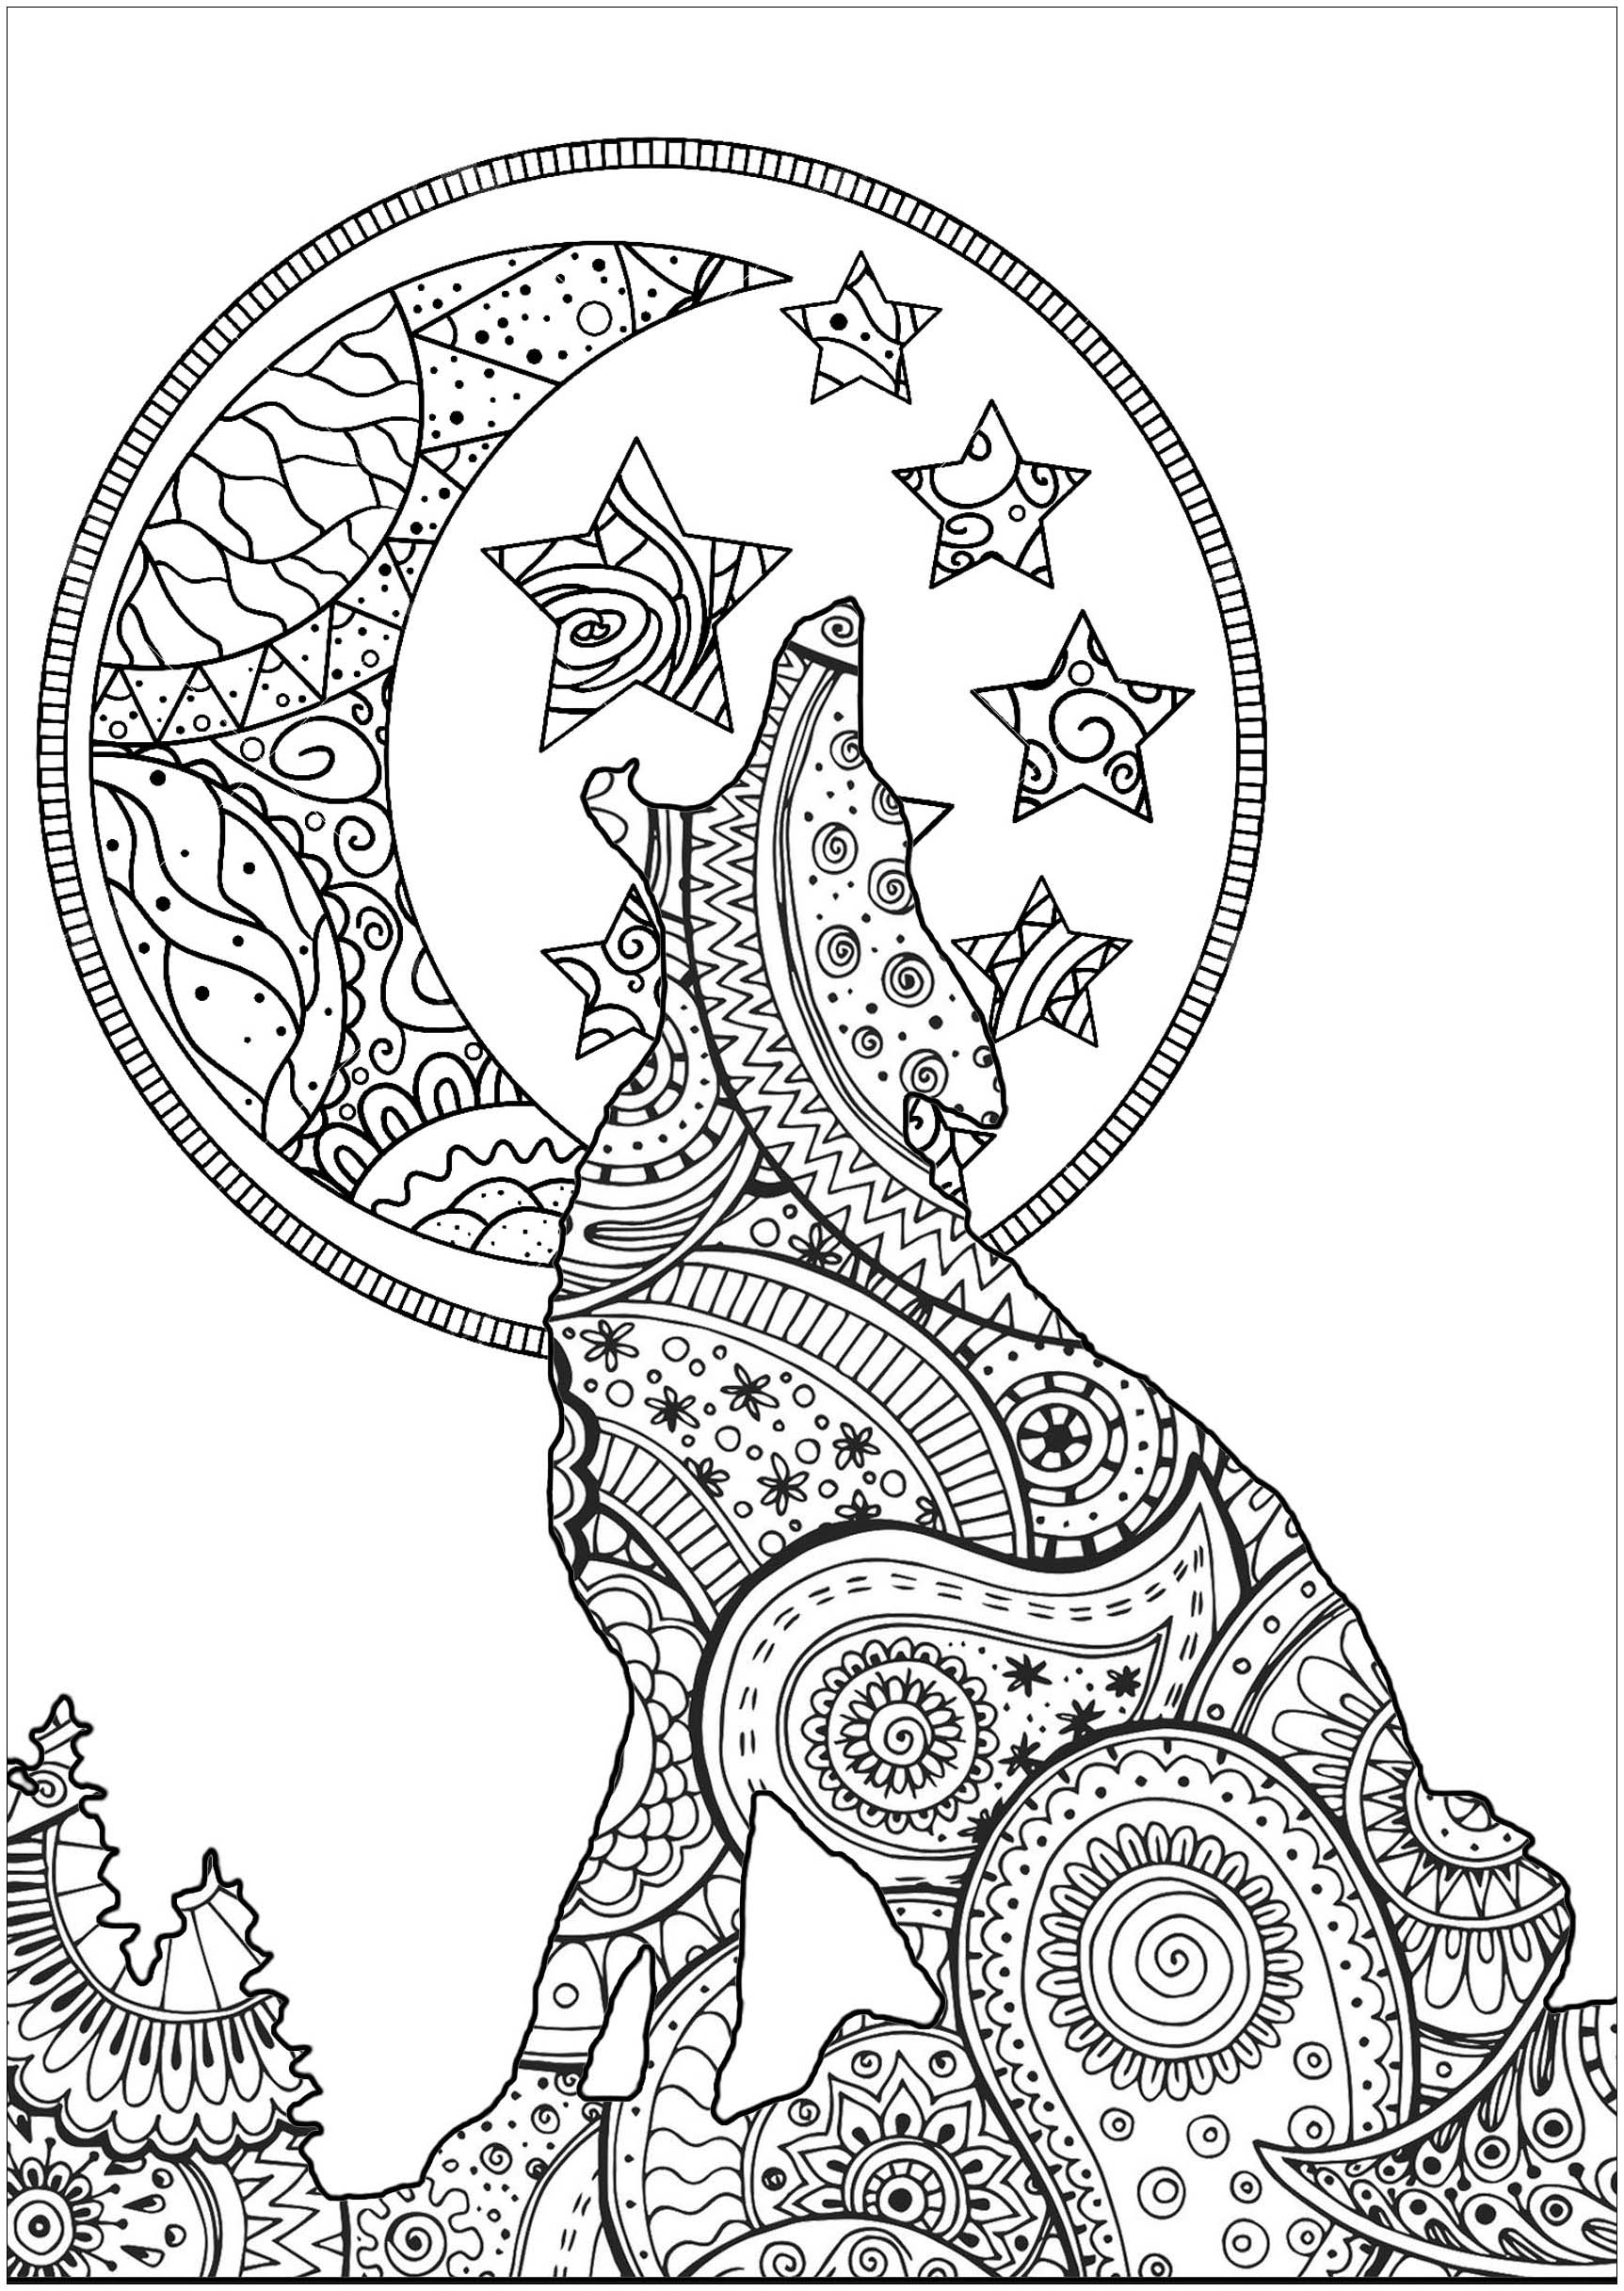 Pretty silhouette of moonlight wolf, with patterns mixing Zentangle and Paisley shapes